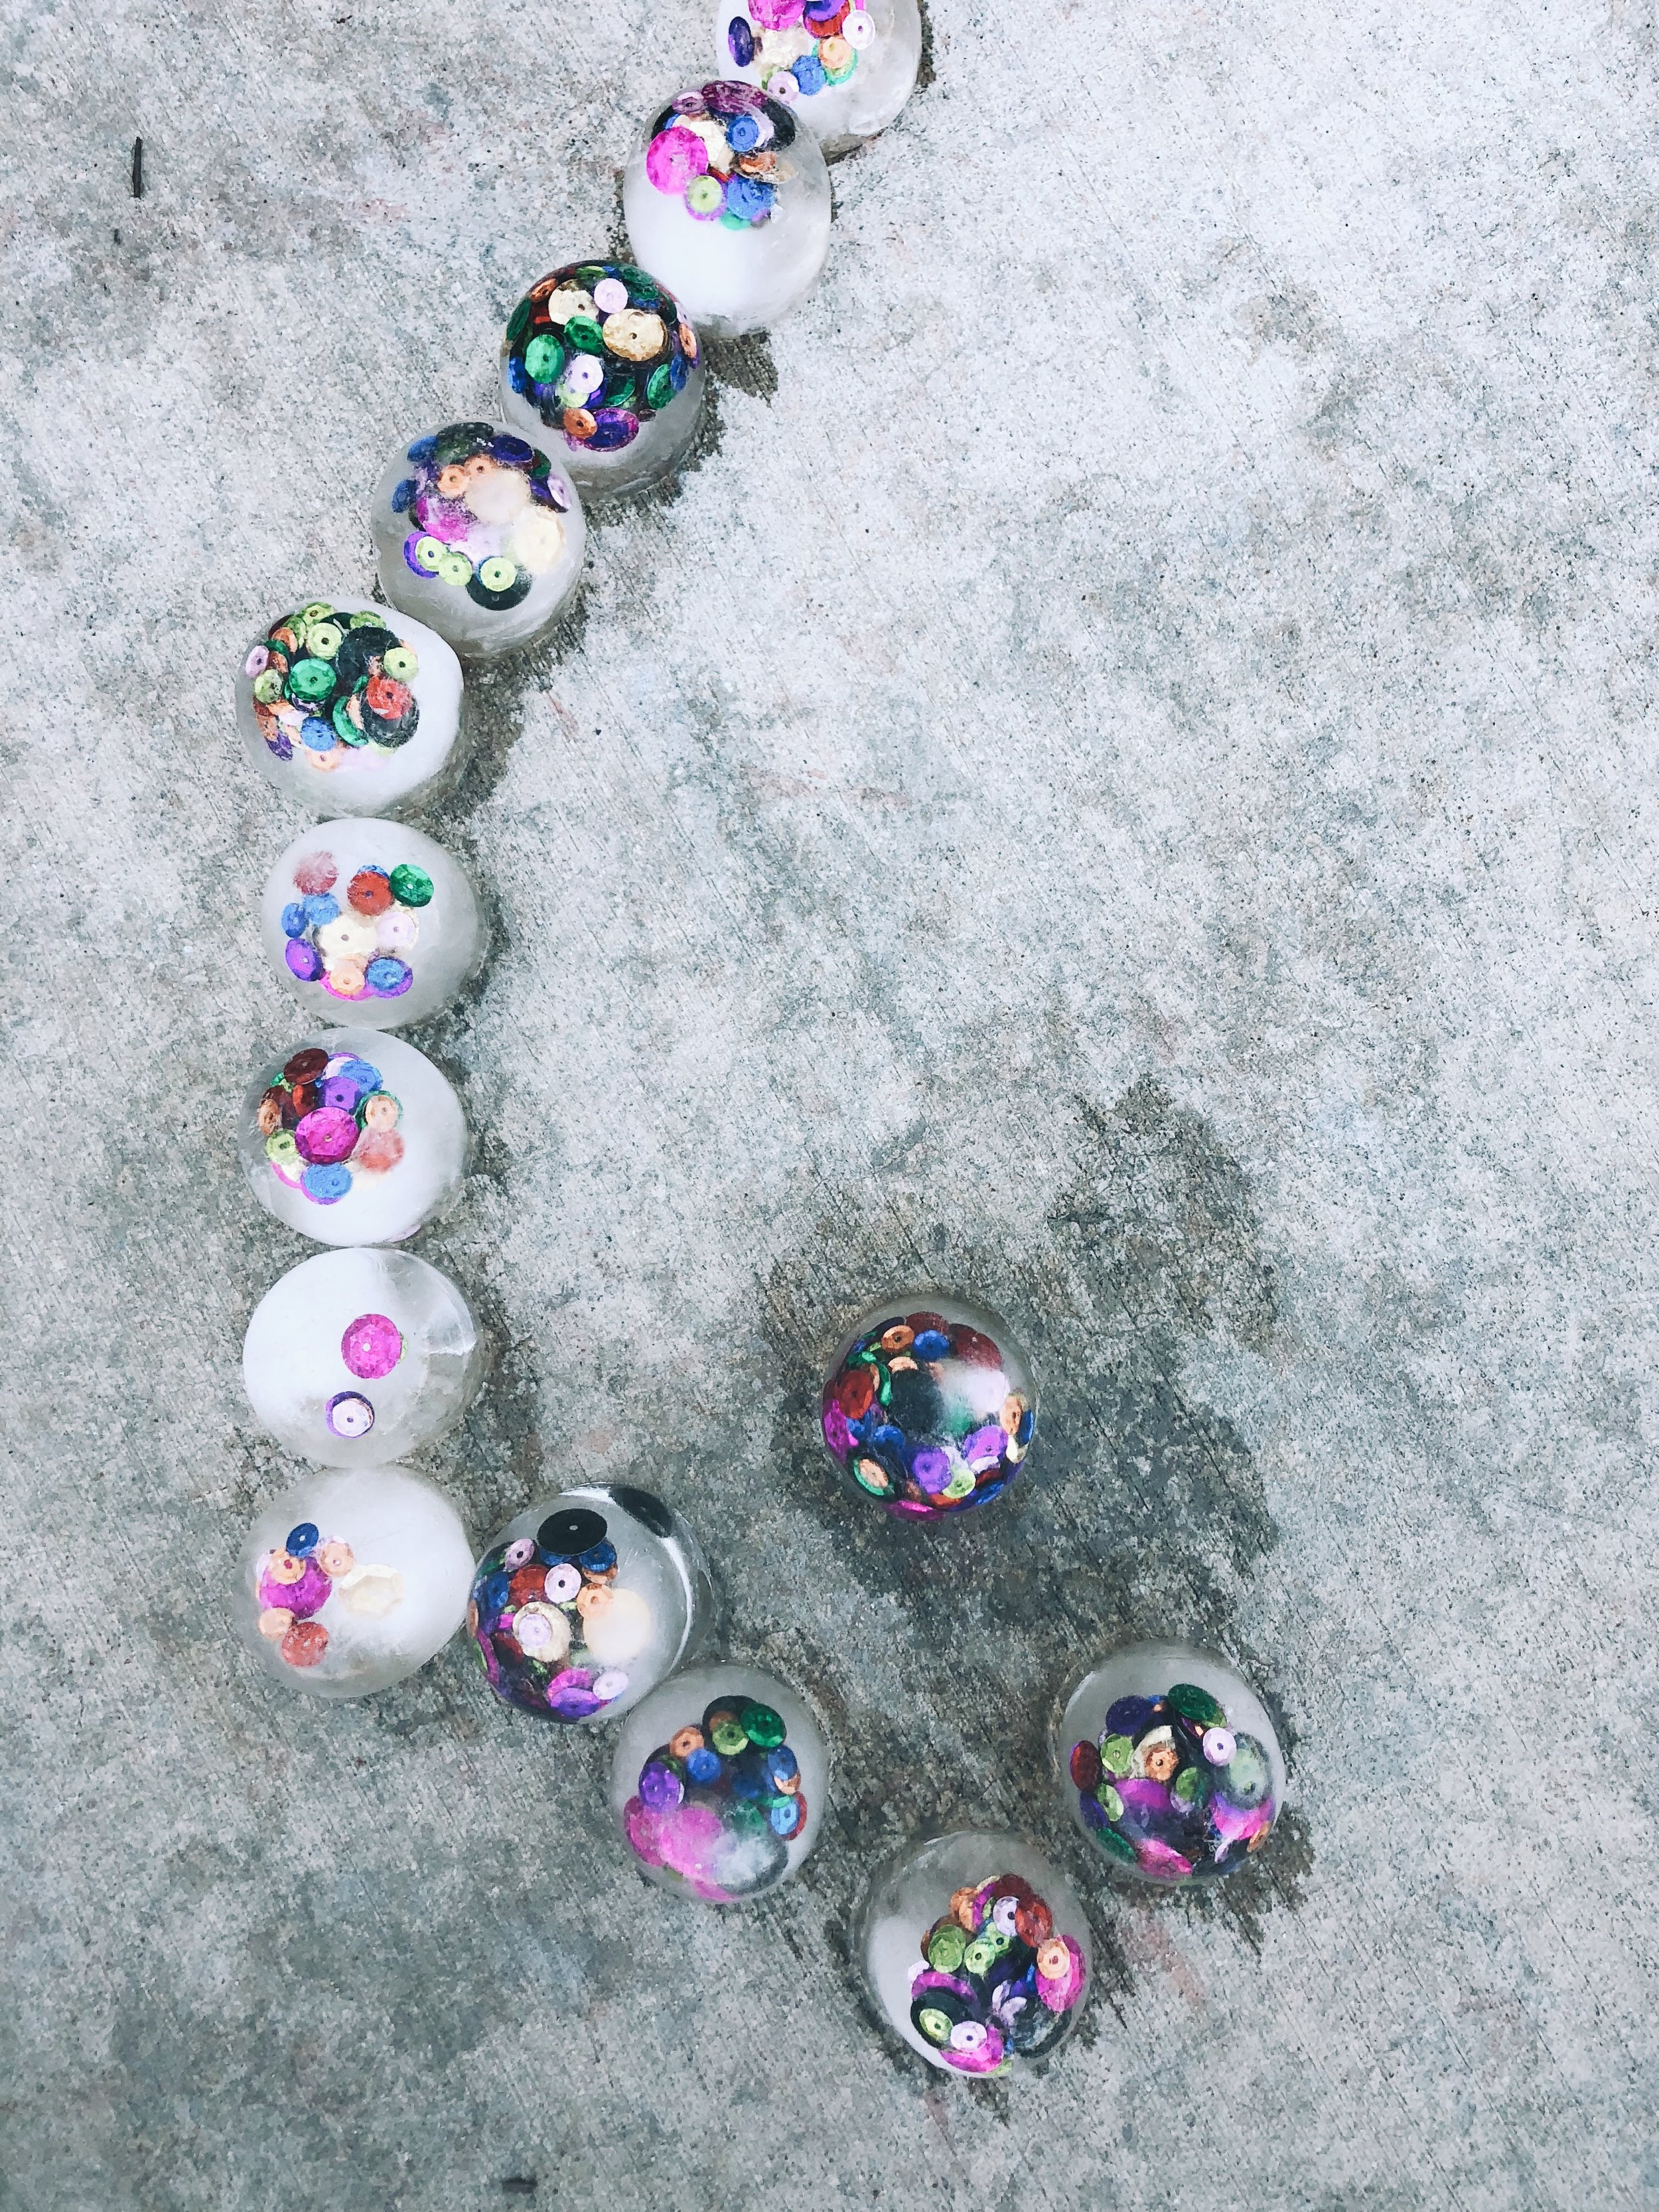 an adorable neighborhood boy (probably only 18 months old) walked by while we were playing with our confetti ice, lined them up like this and then walked away. It was adorable!